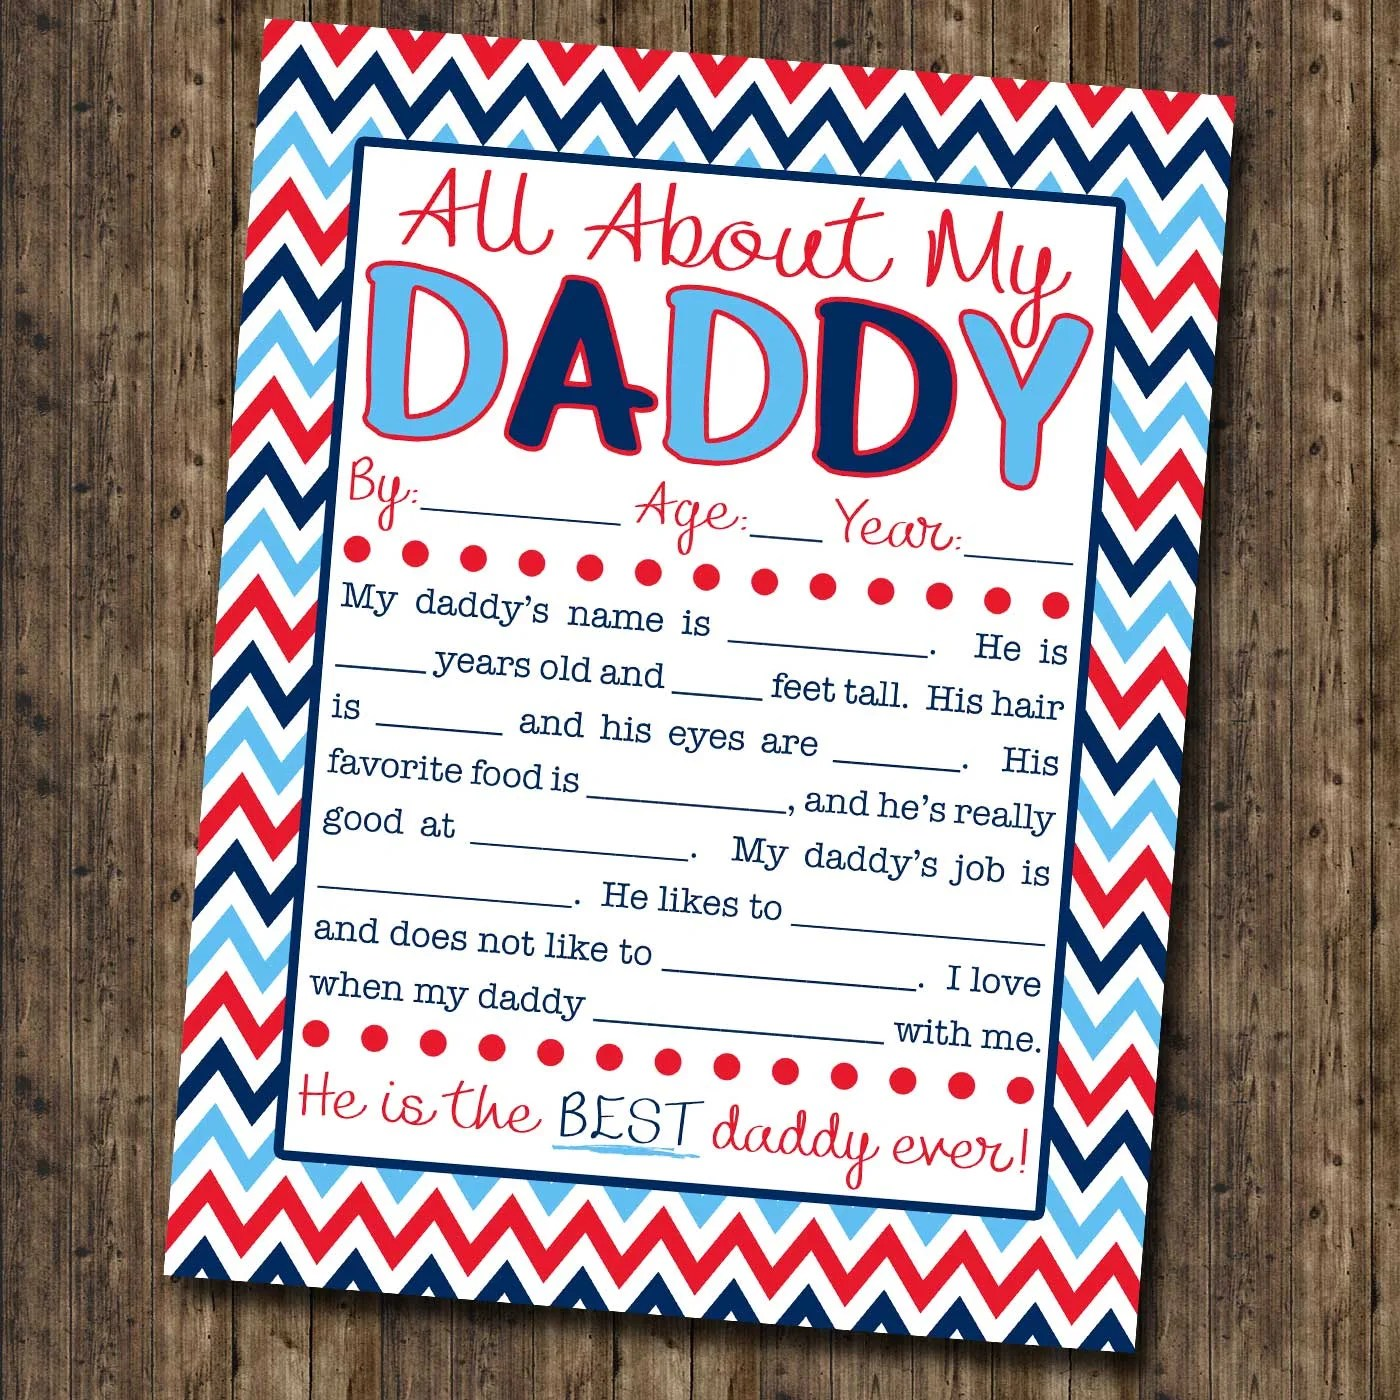 graphic relating to All About My Papa Printable identified as All Over My Daddy Job interview with Absolutely free Printable!